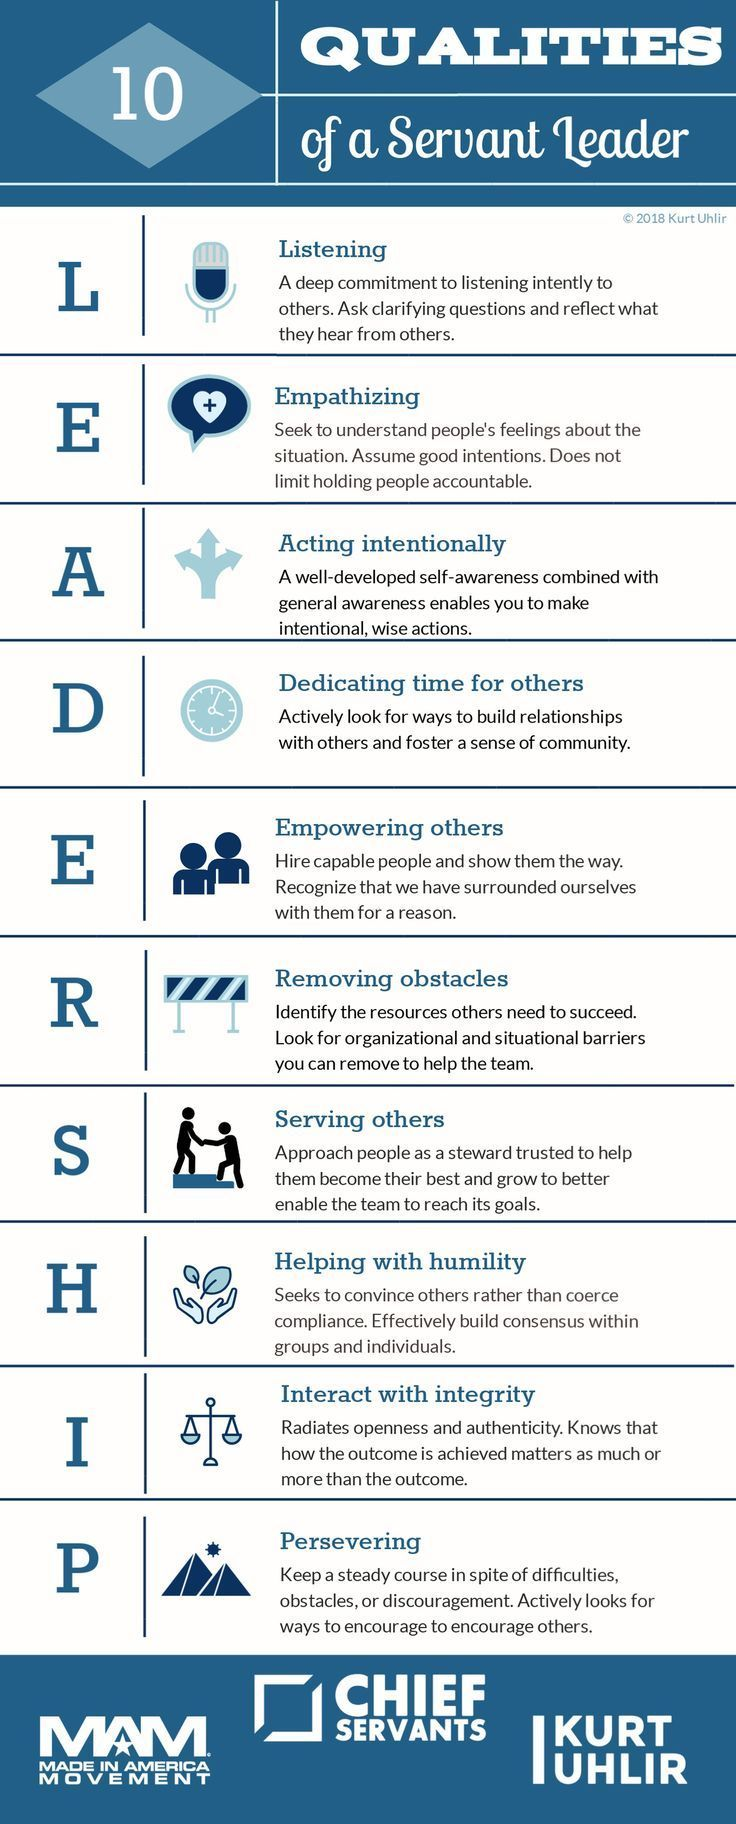 10 Qualities of a Servant Leader {Infographic}